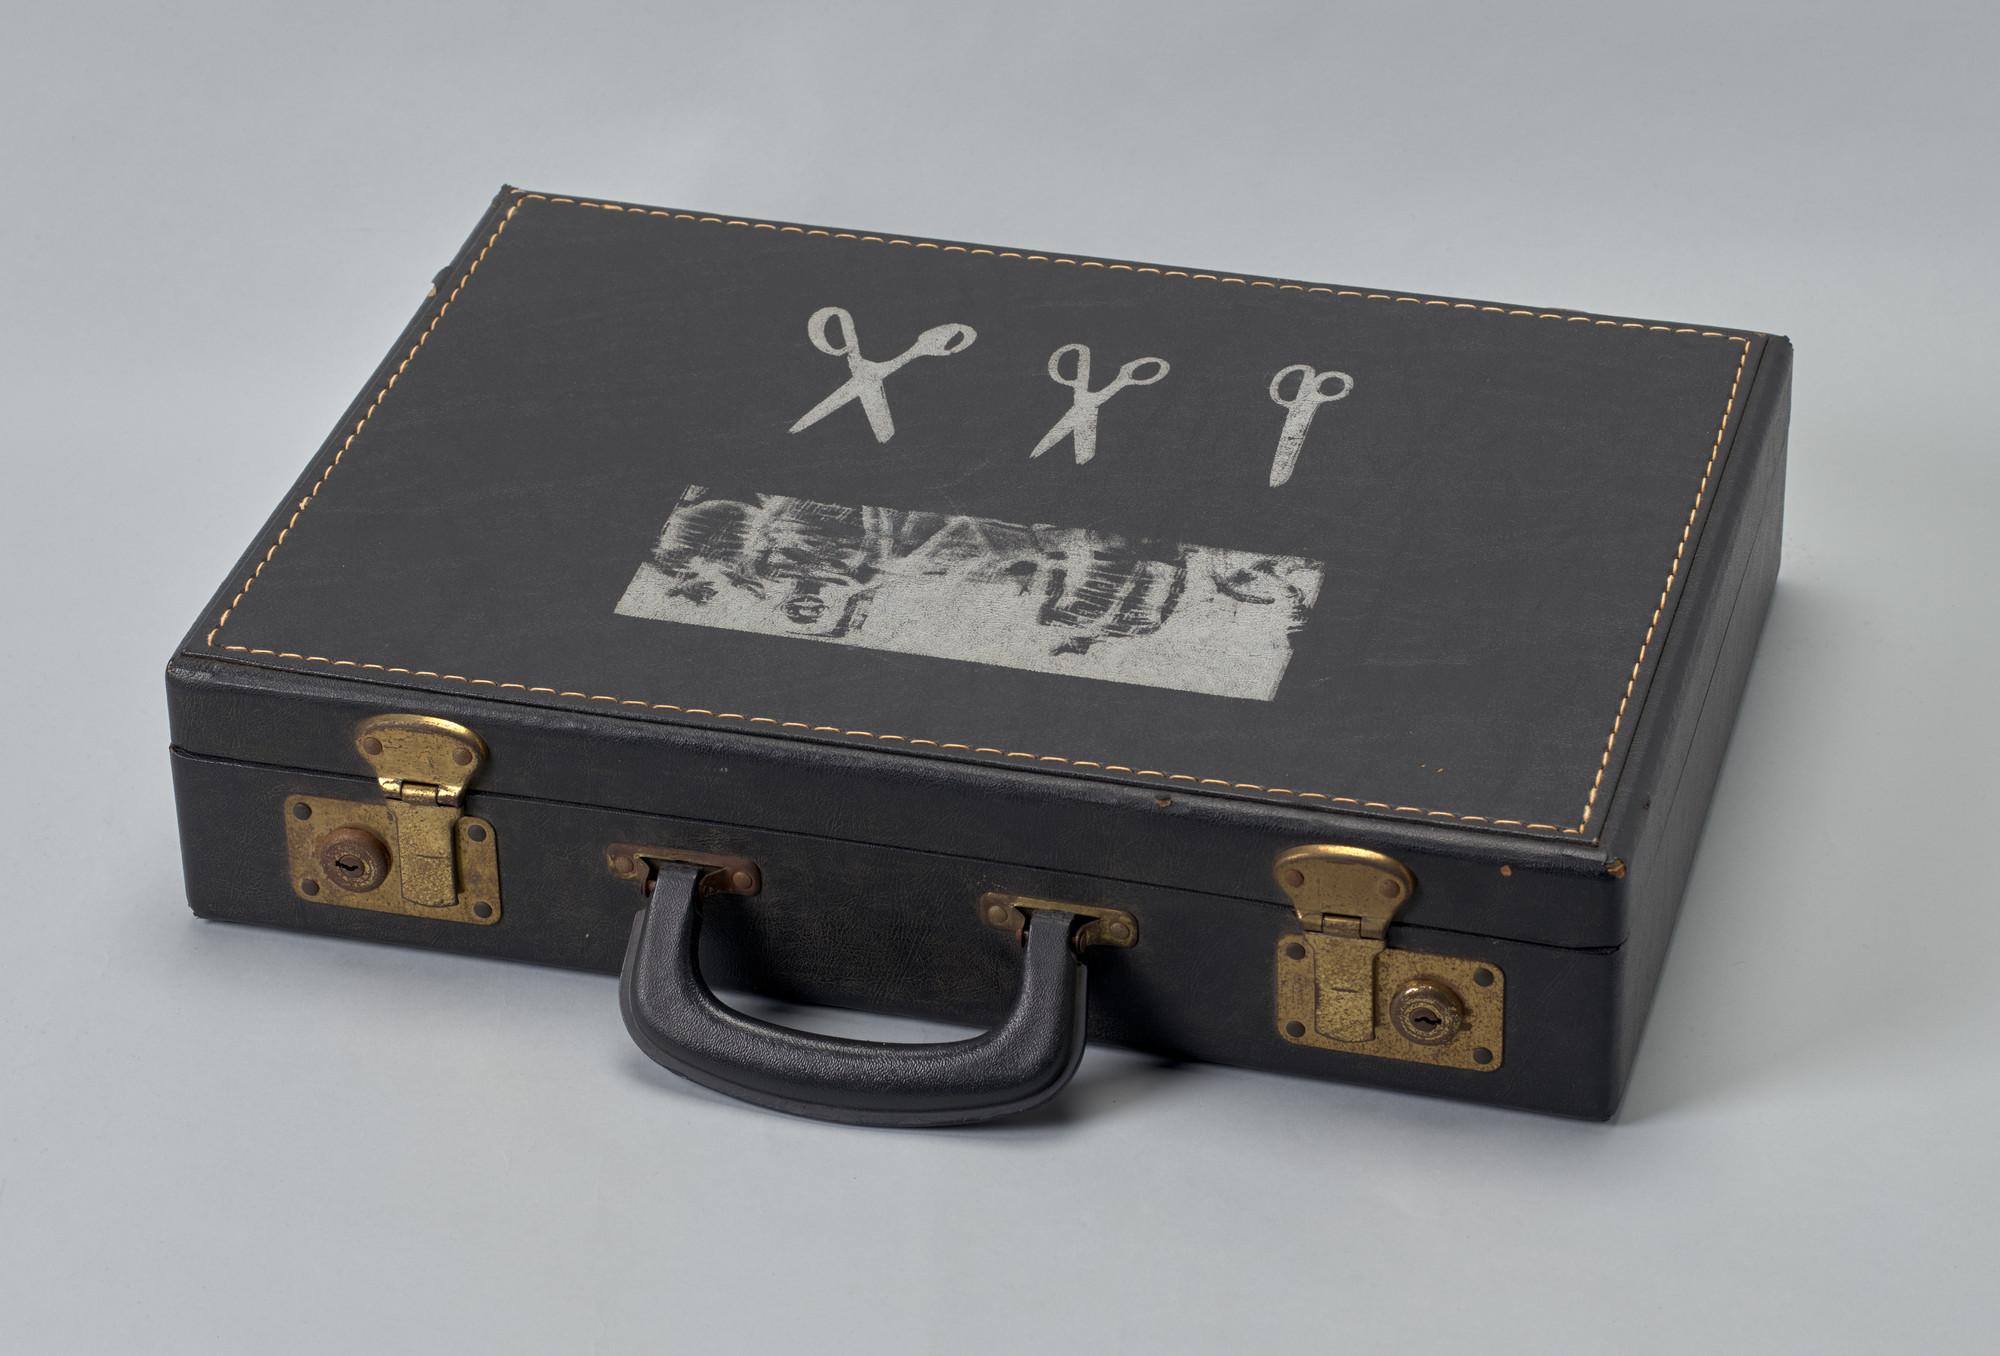 Alison Knowles, George Brecht, Robert Watts. Attaché Case. 1963